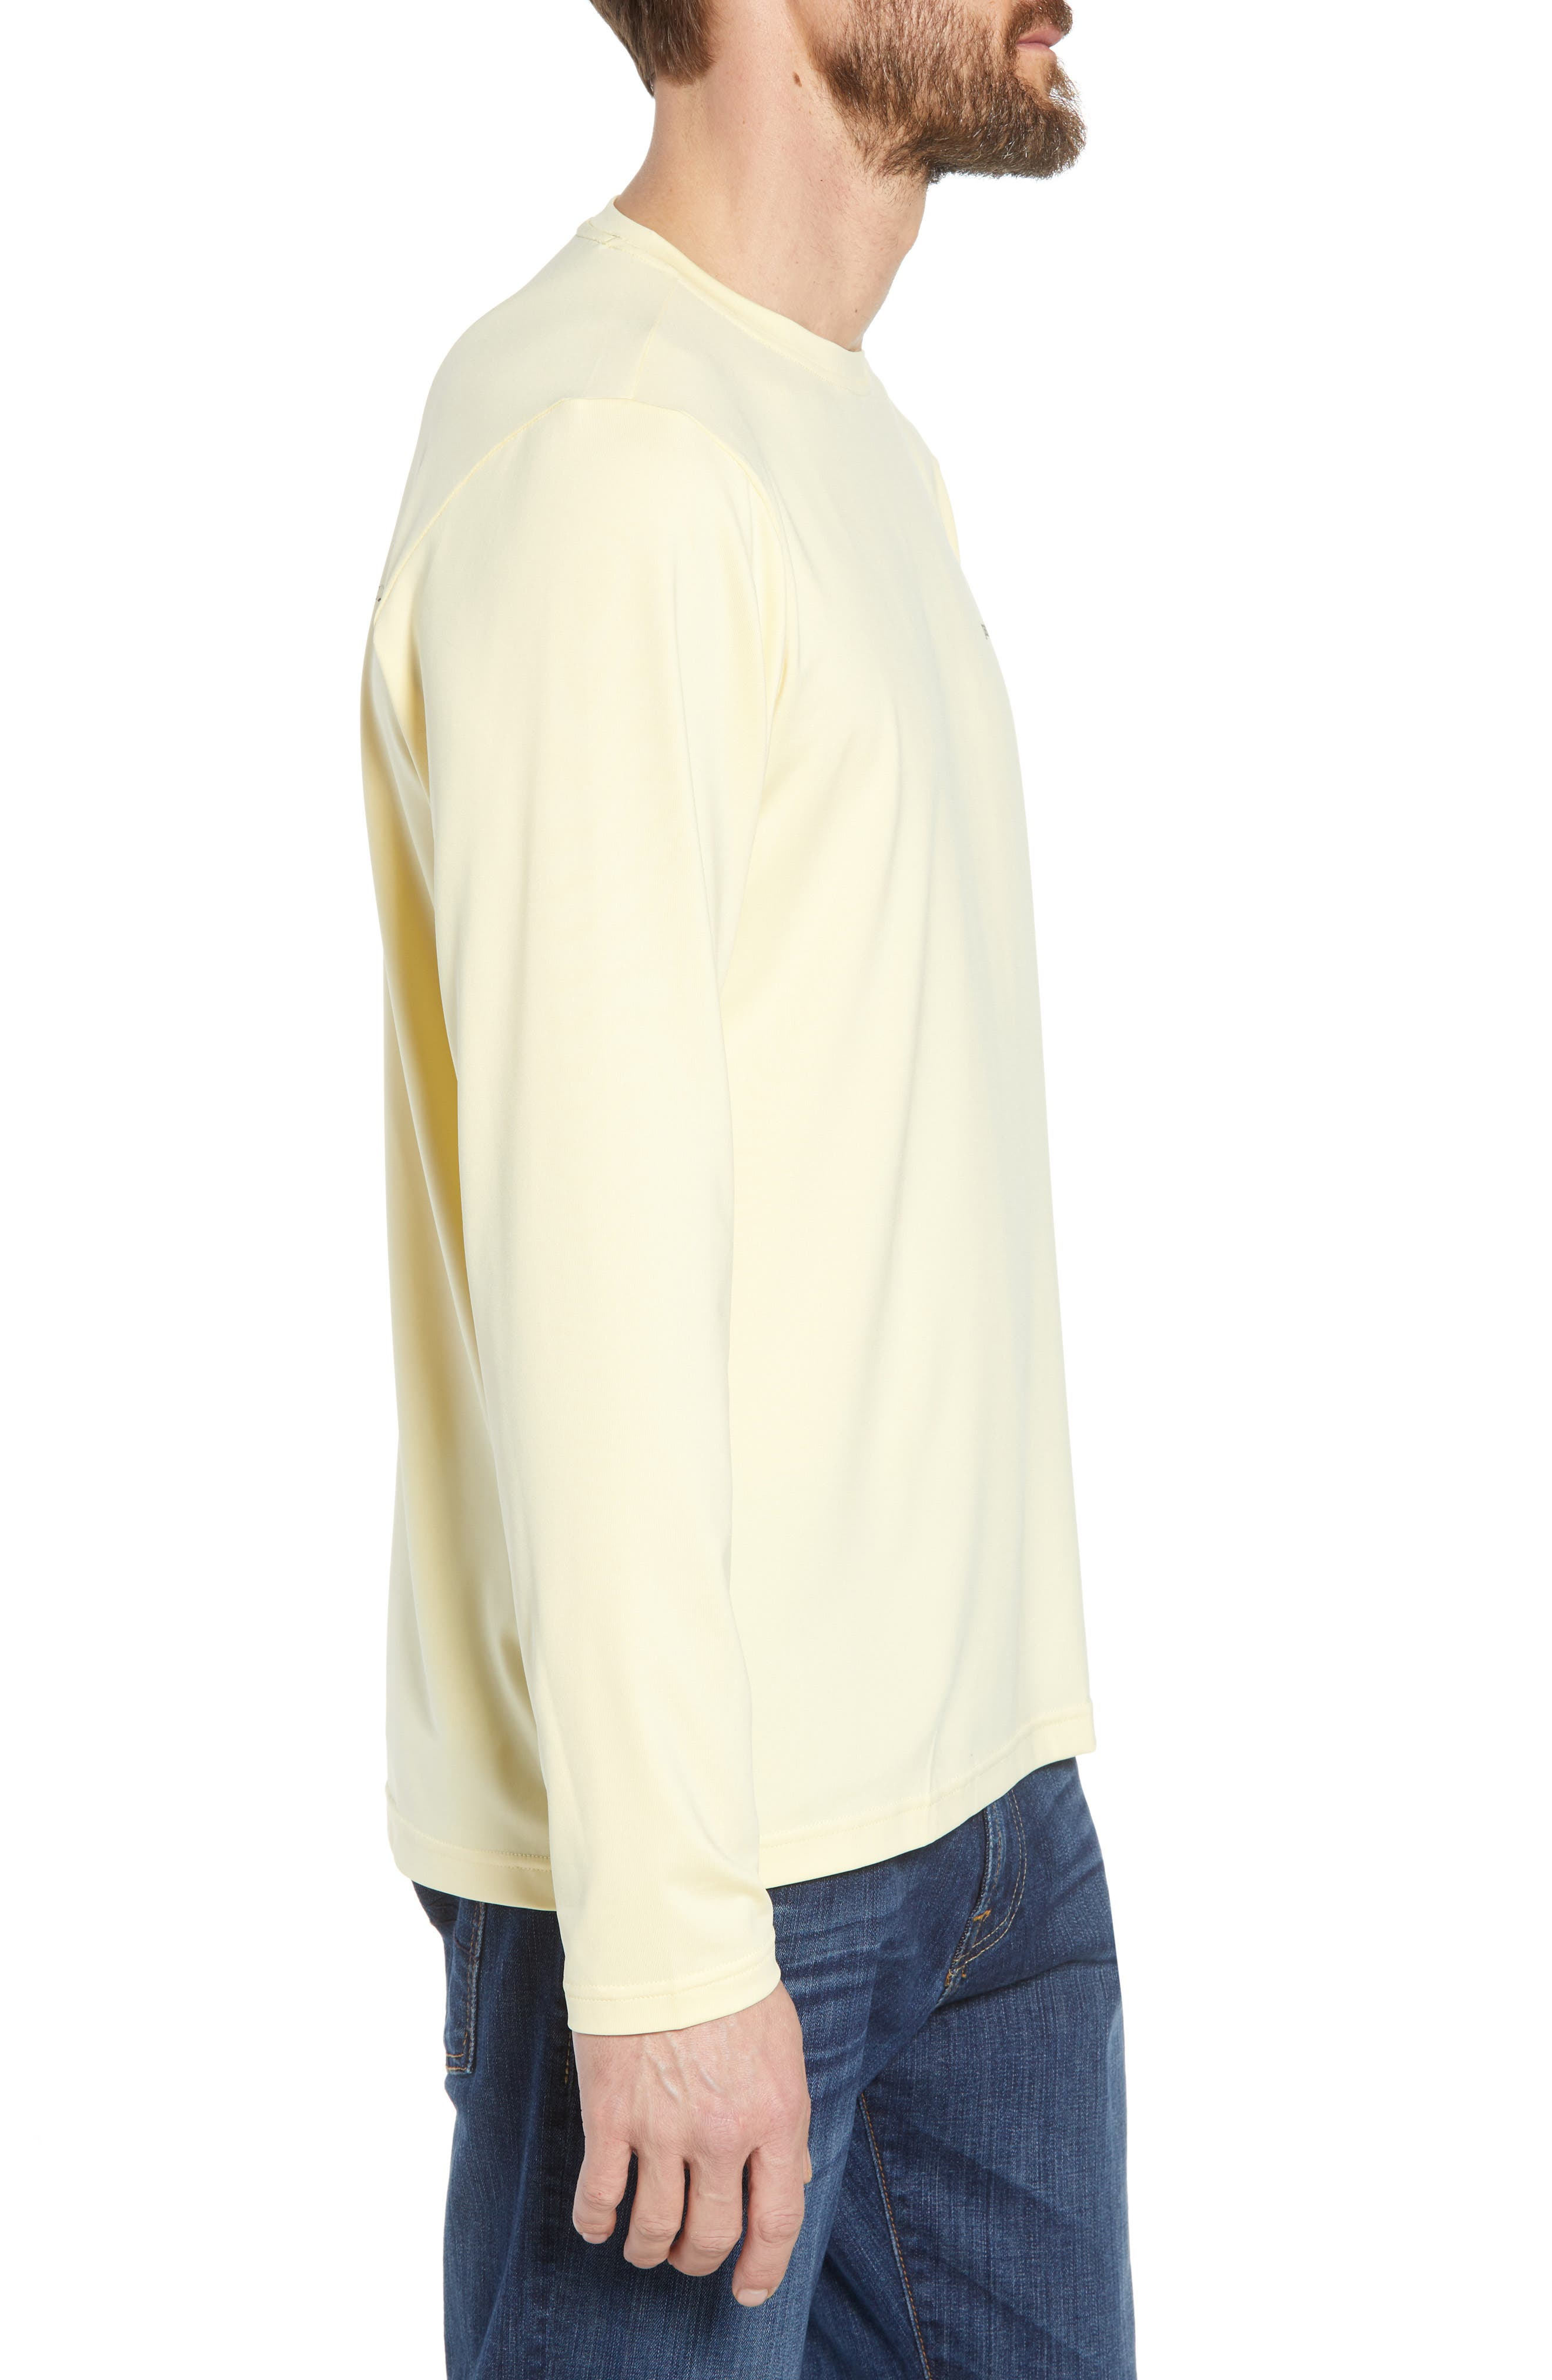 Tech Fish Graphic Long Sleeve T-Shirt,                             Alternate thumbnail 3, color,                             Lucky Fly/ Crest Yellow